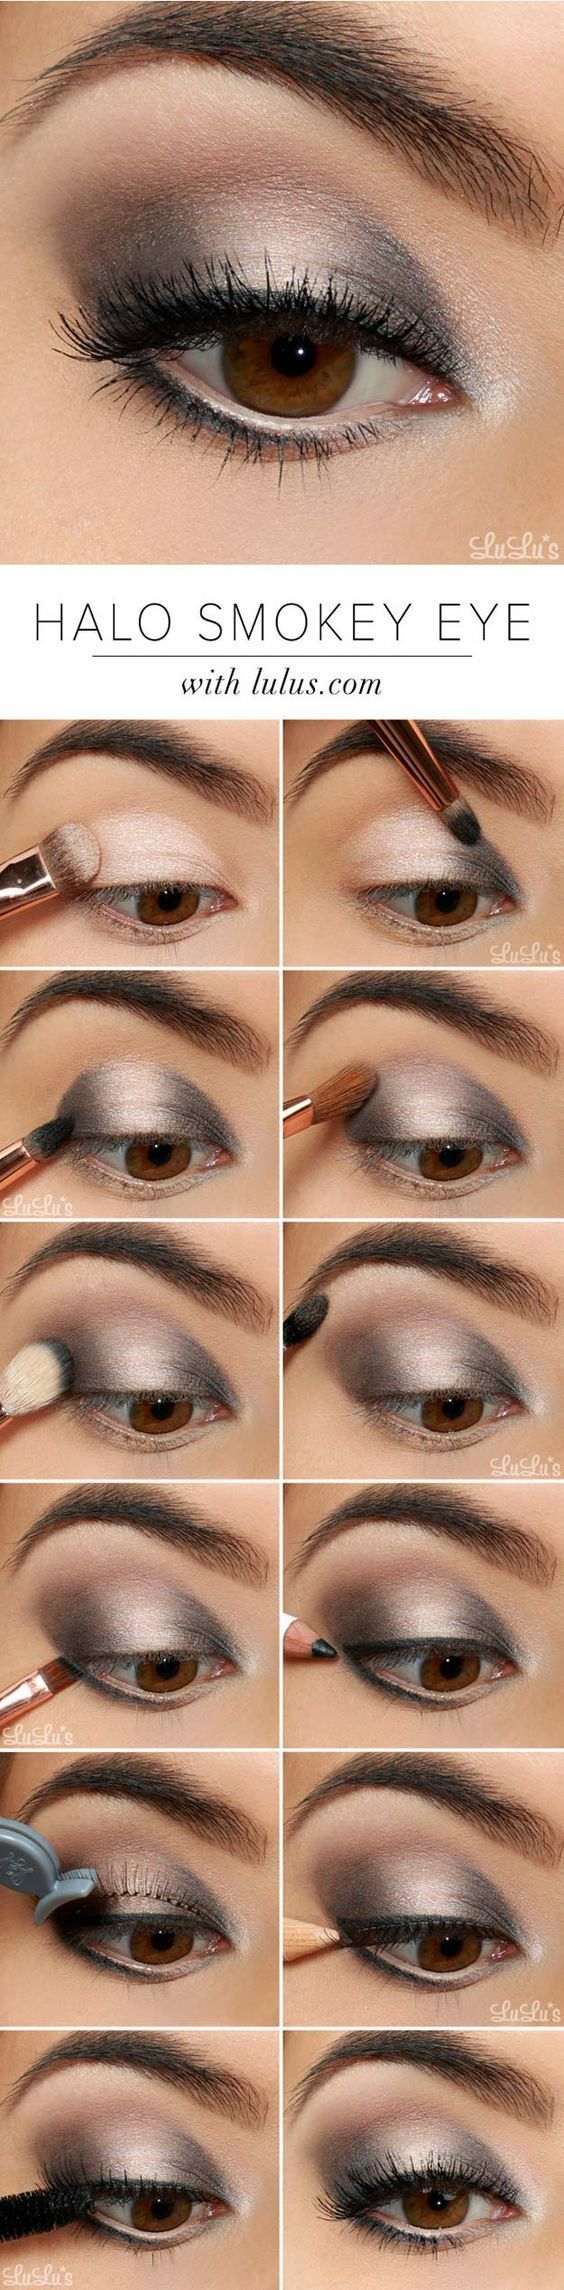 Step by Step Smokey Eye Tutorials - Halo Smokey Eye - Step by Step Tutorials on How to Apply Different Eyeshadows for Smokey Eyes - Awesome Looks for Brown, Black, and Blue Eyes, Natural Looks, and Looks for All Types of Lashes - thegoddess.com/step-by-st (bridesmaid makeup for brown eyes)